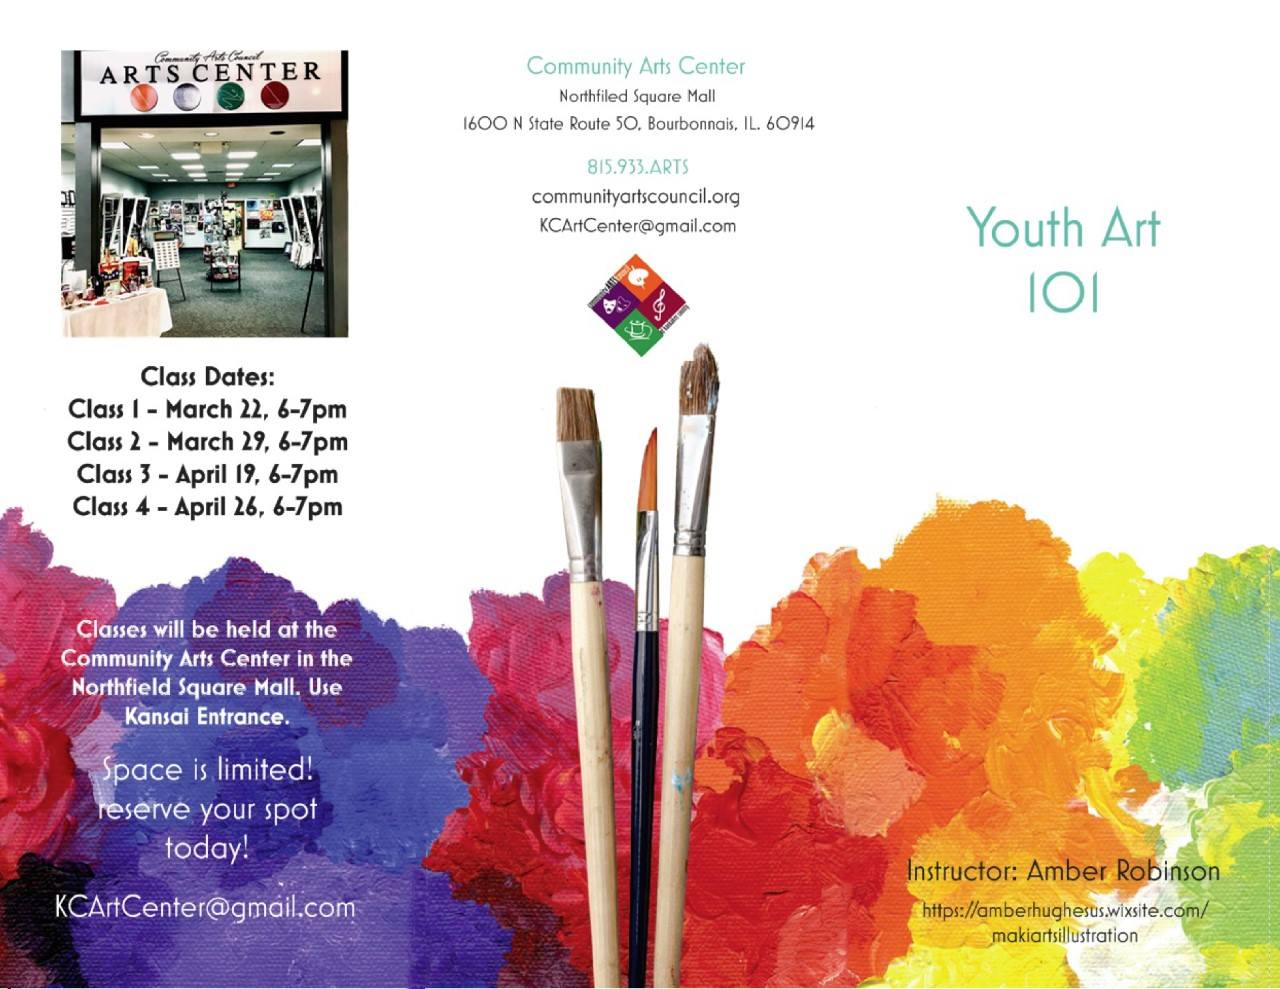 Youth Art 101 at Arts Center